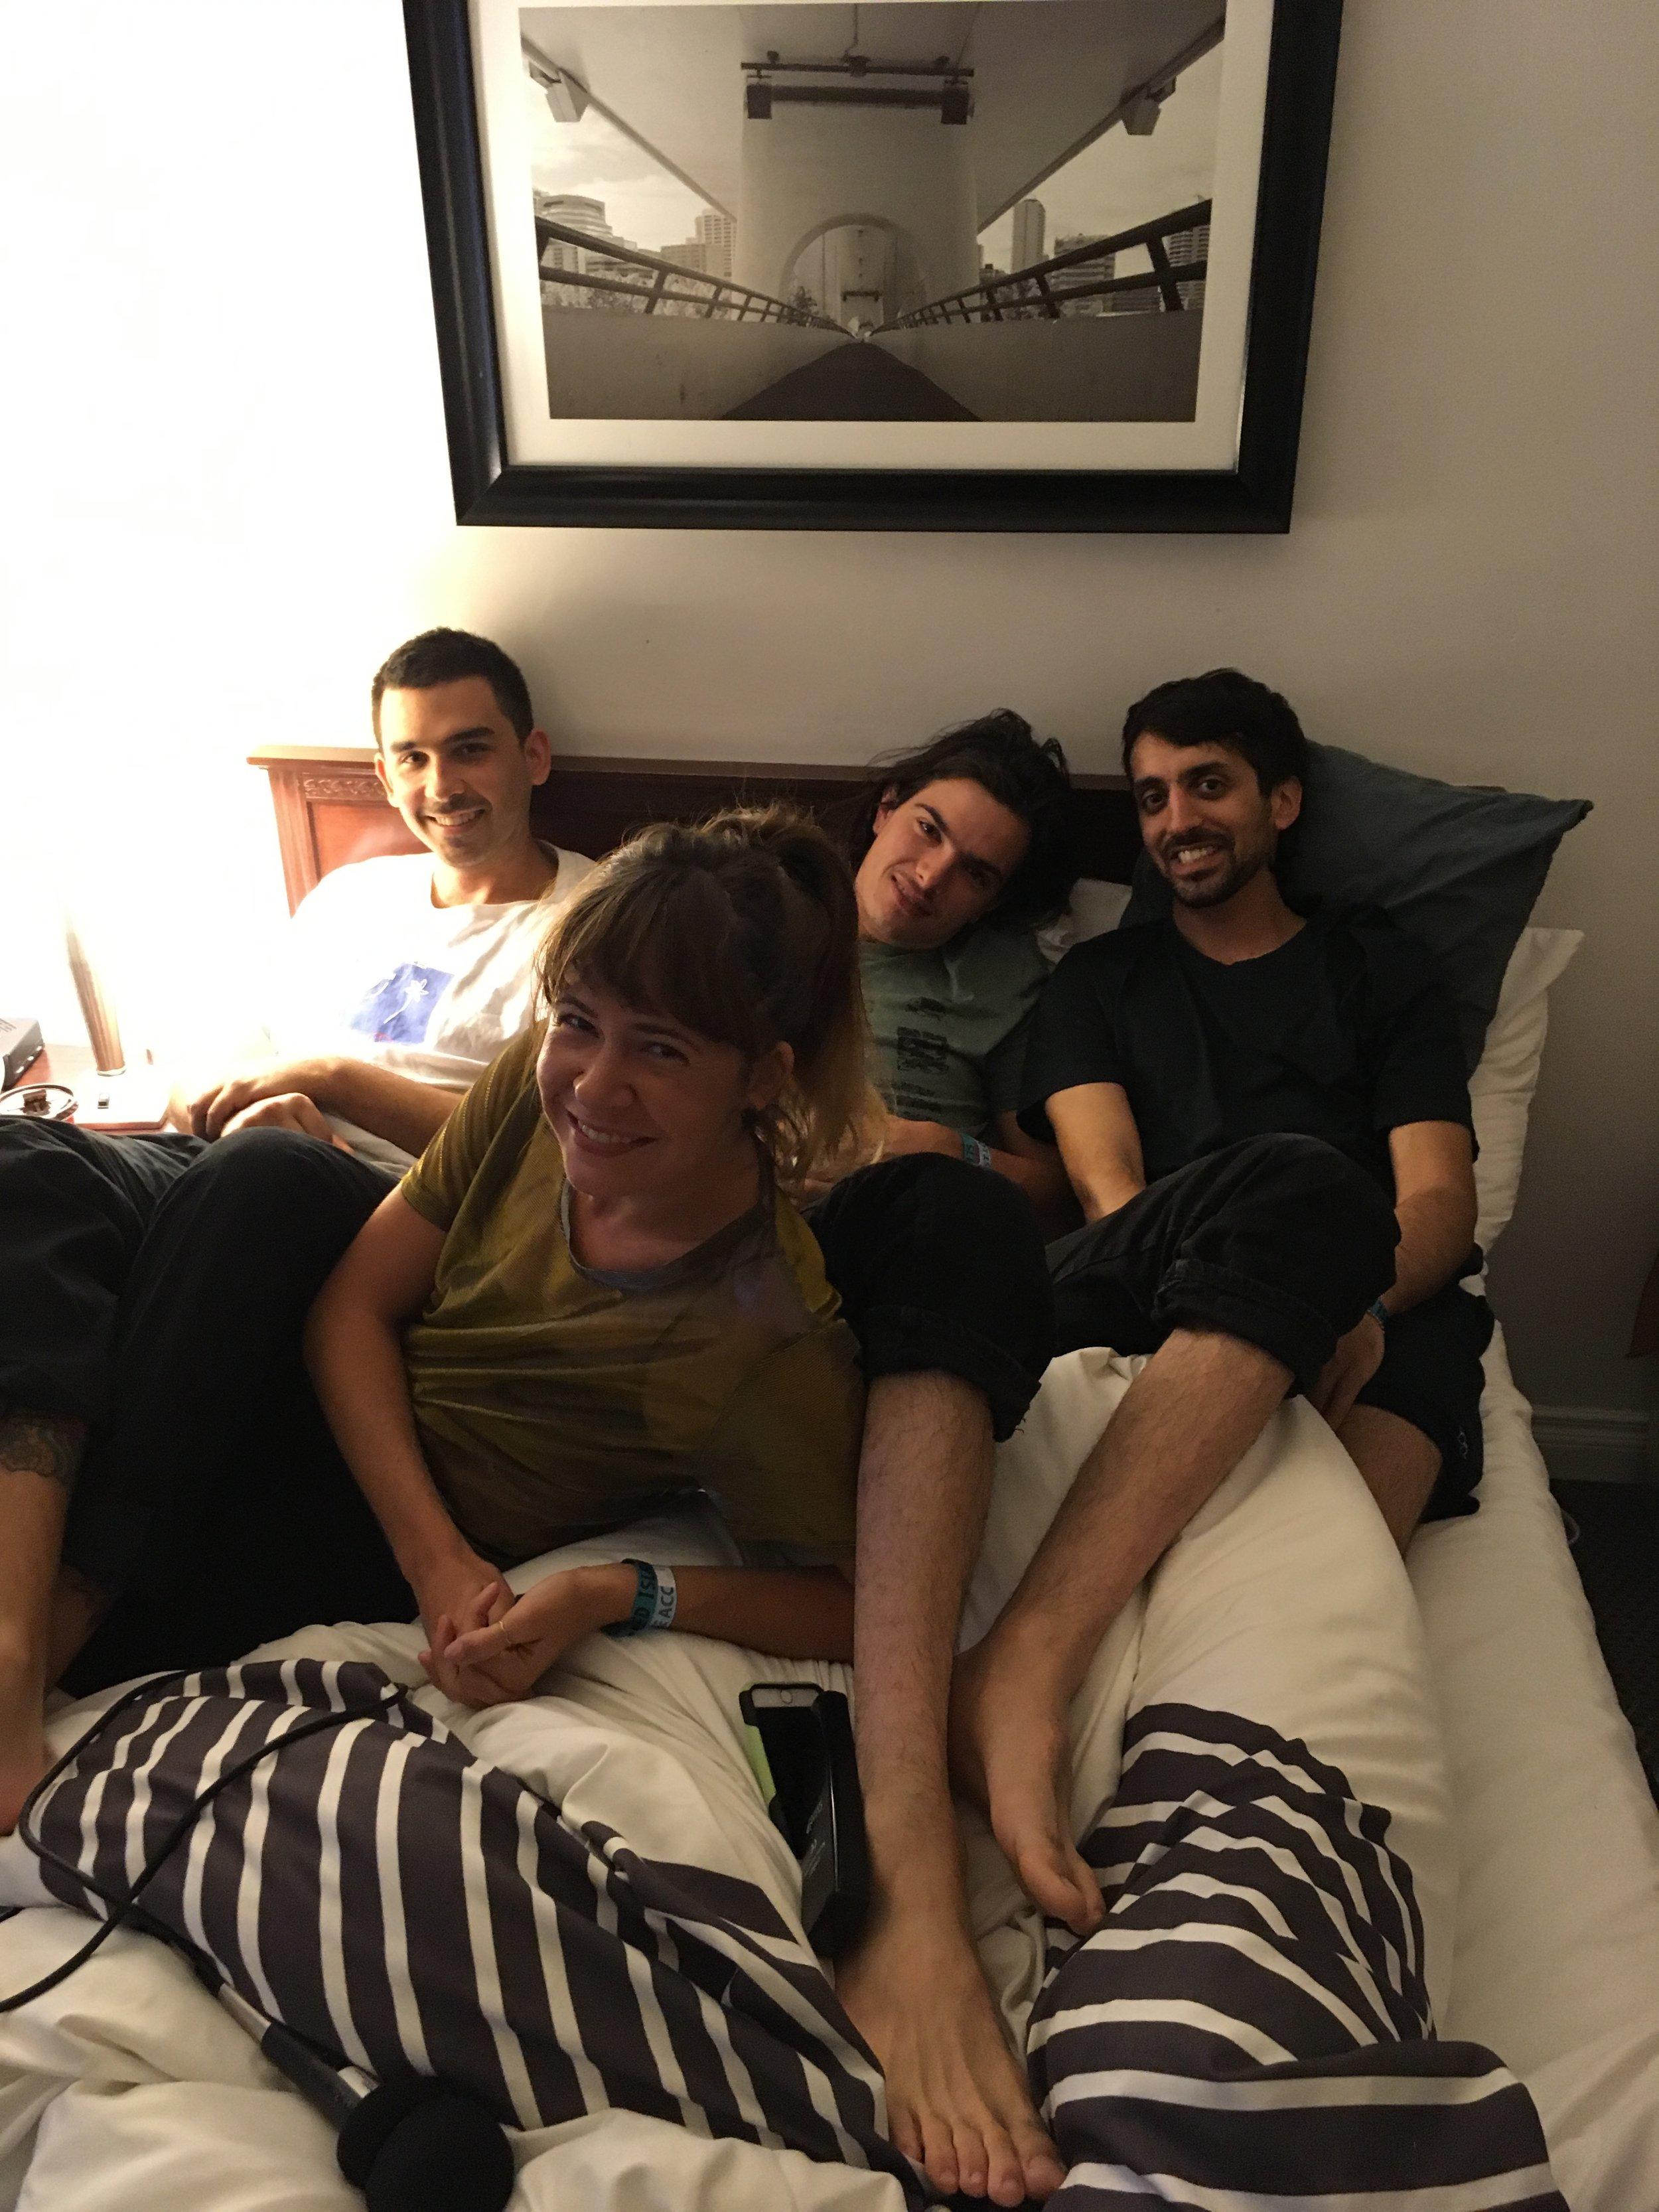 Dumb at their hotel